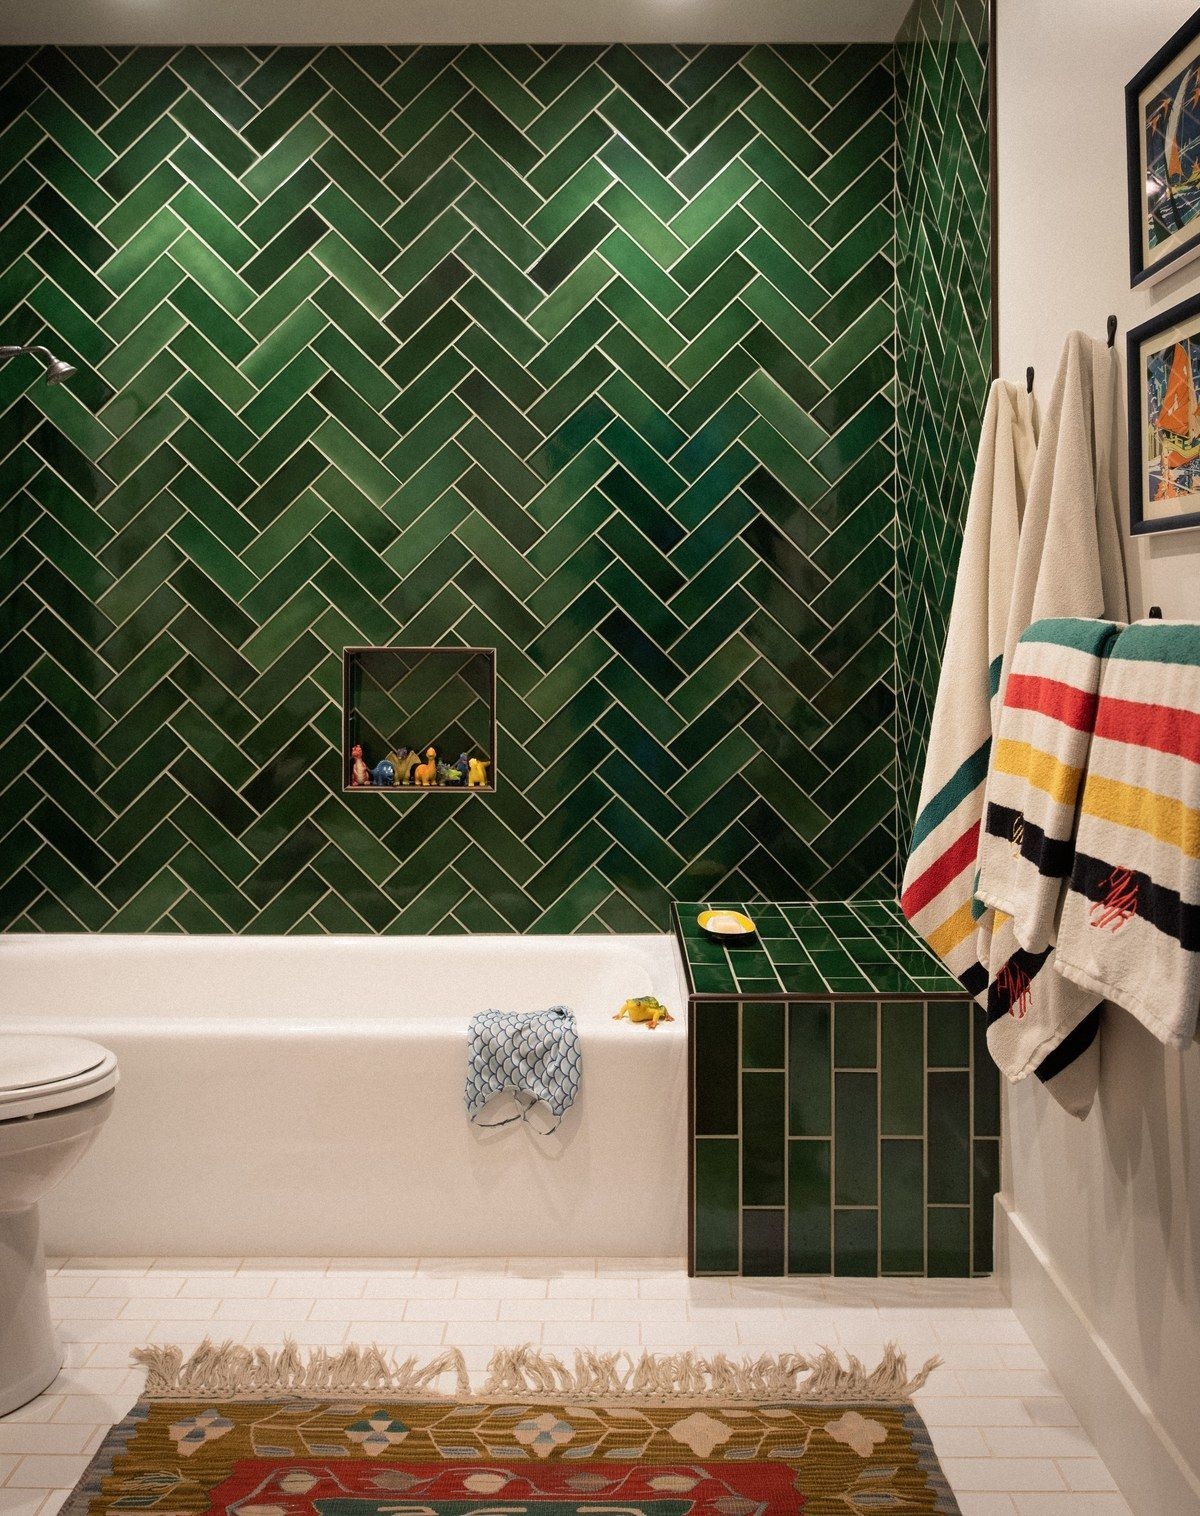 Photo of Inside a Leading Stylist's Eclectic Ojai Oasis #bathroomtiledesigns Howell red…